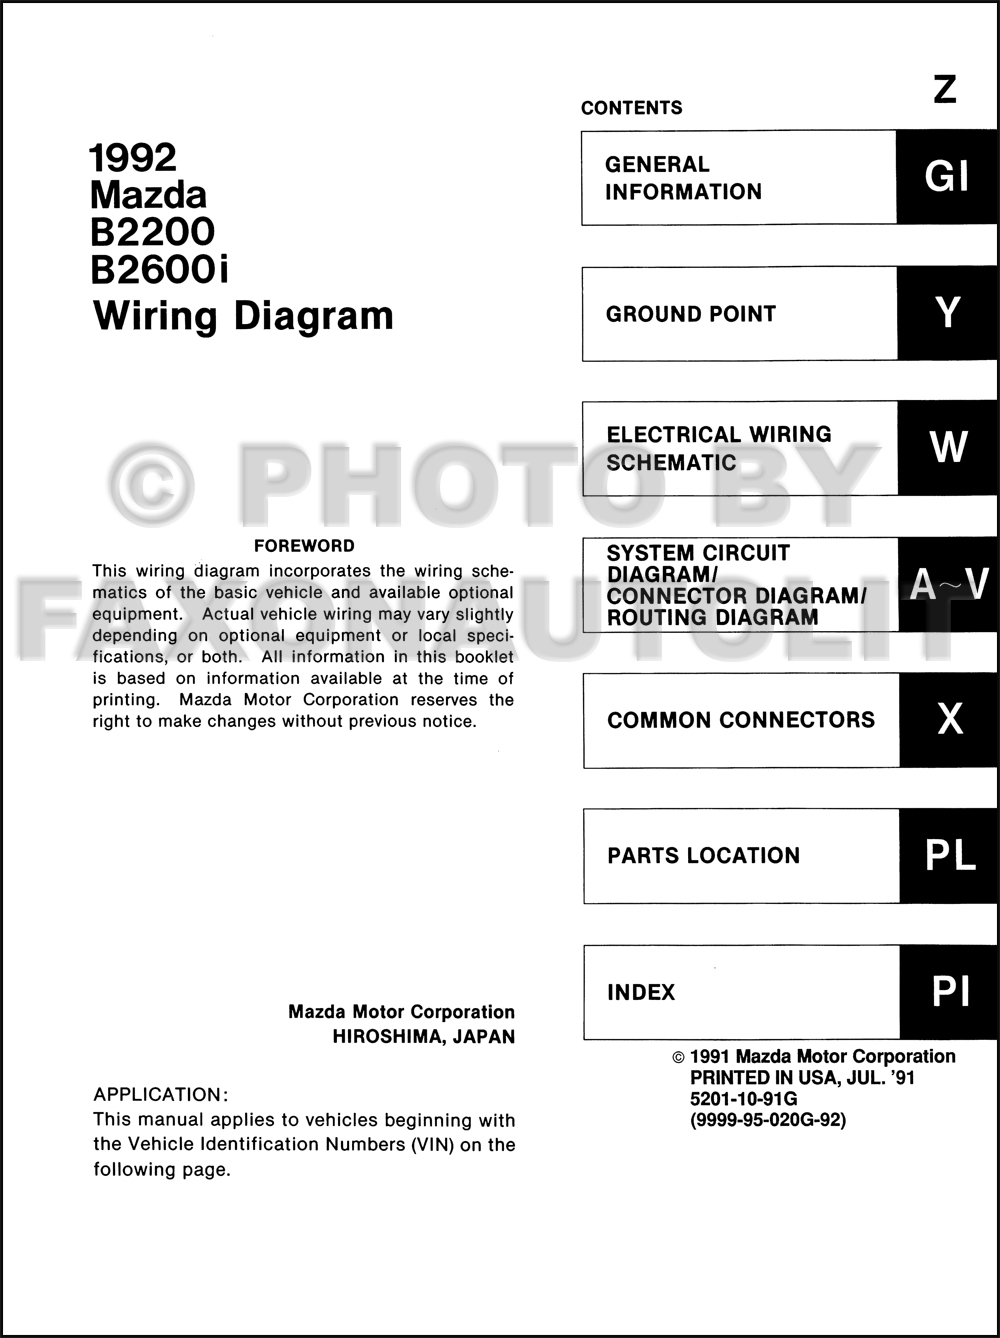 1983 Mazda Rx7 Wiring Diagram Detailed Schematics Schematic For 1994 Miata Engine 1992 B2200 B2600i Pickup Truck Manual Original Rx 7